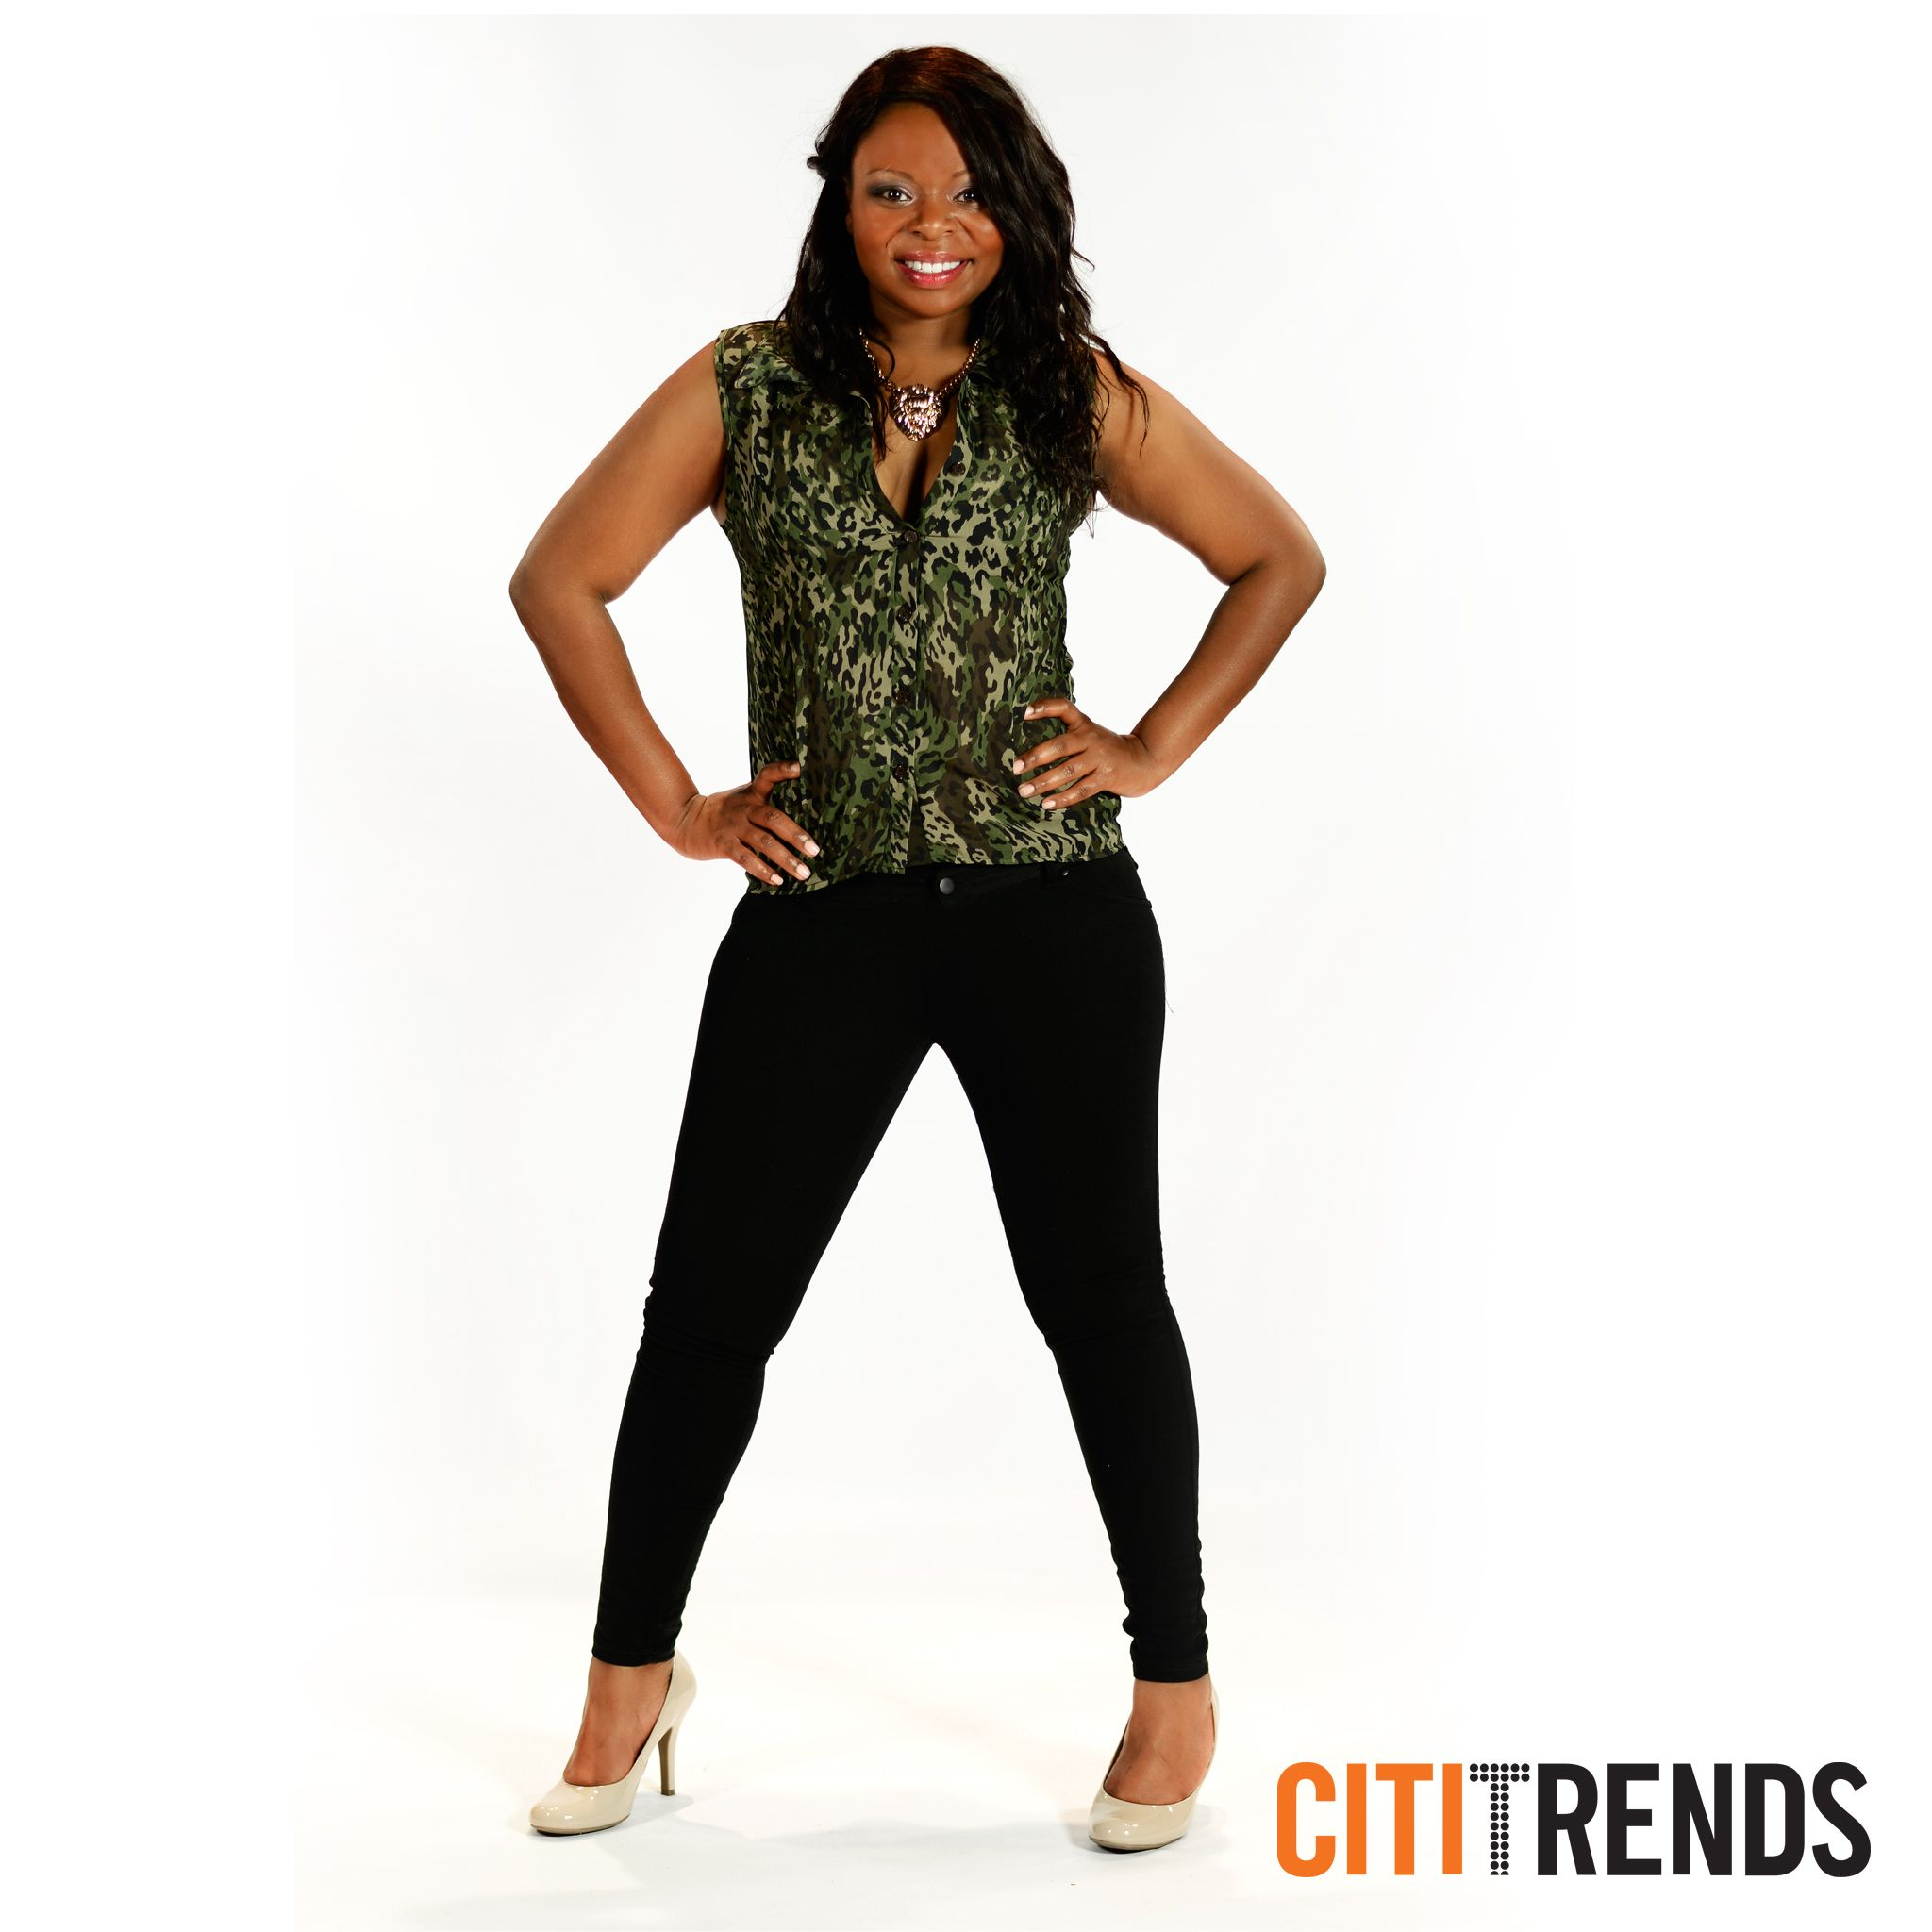 Citi Trends Fashion Clothing Store